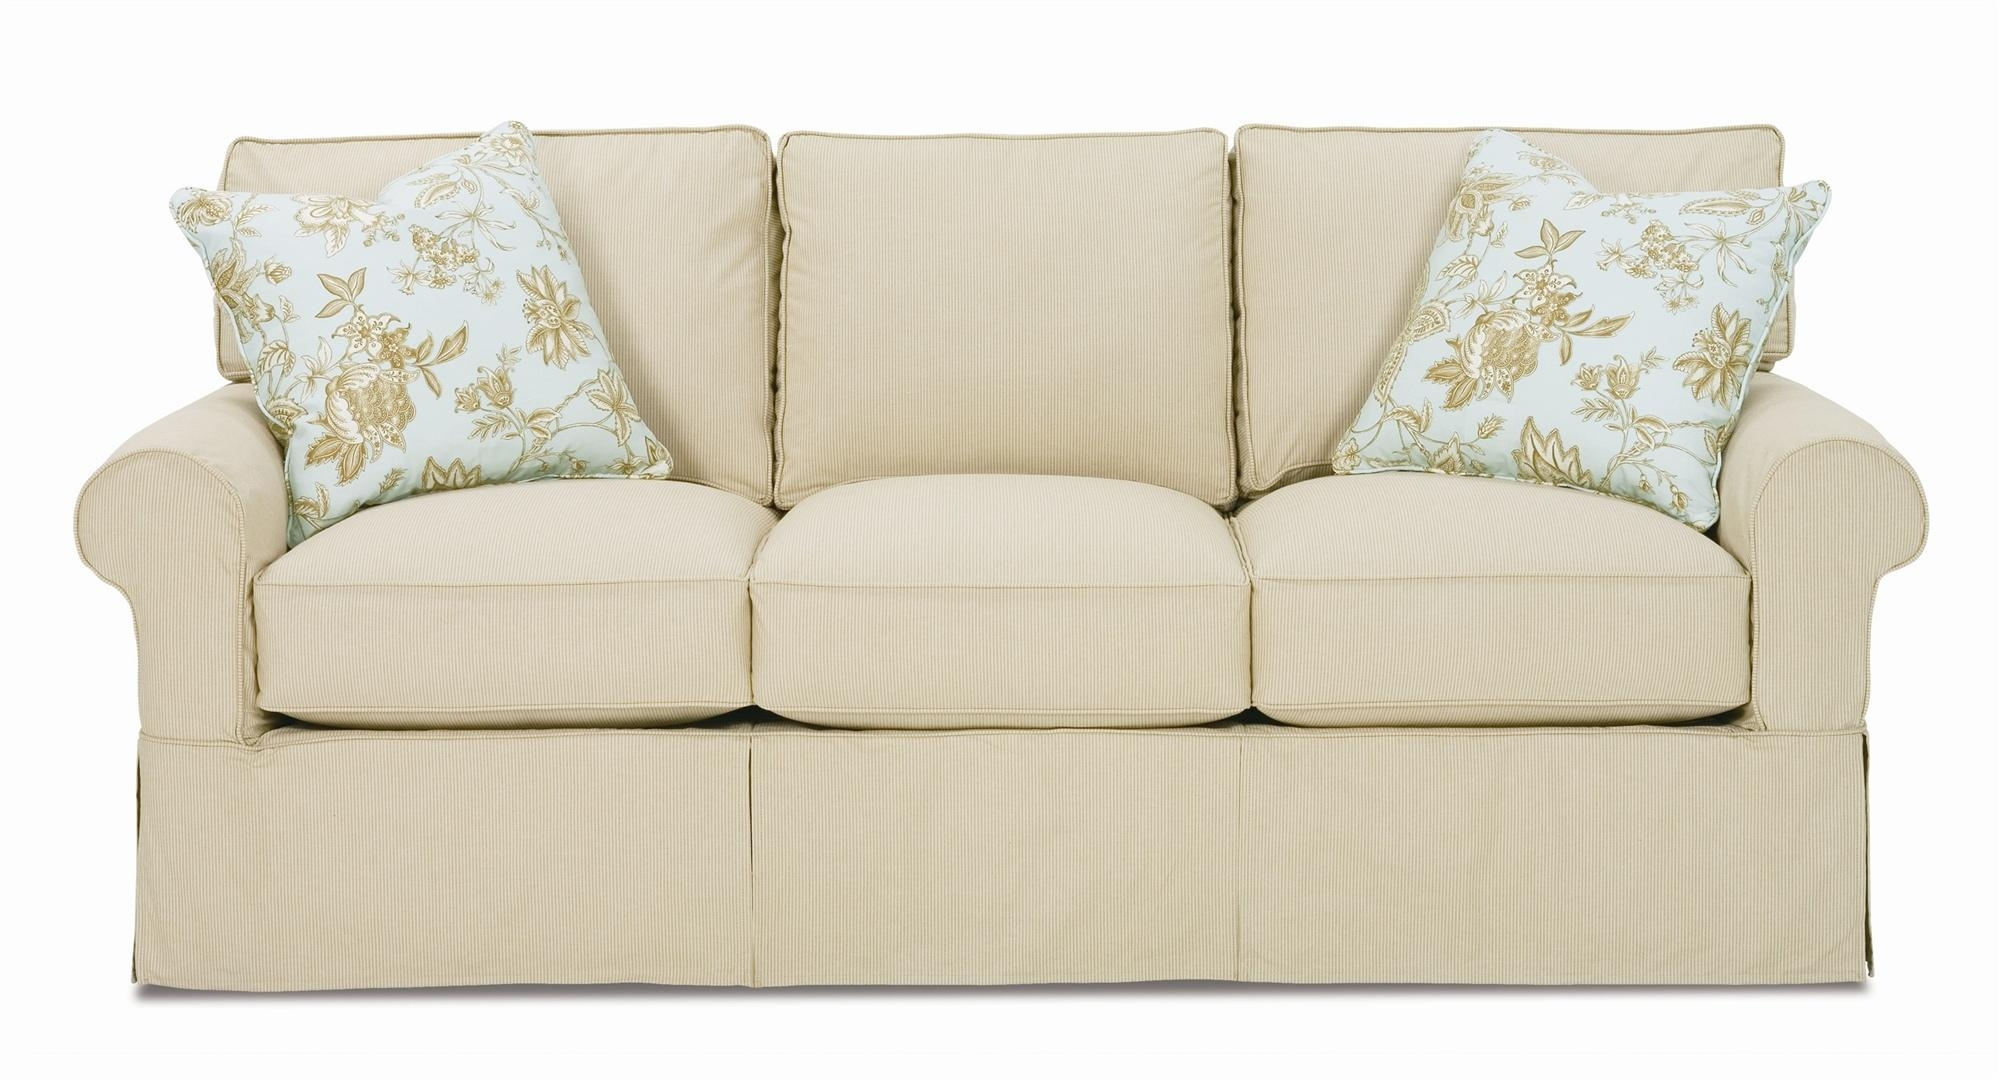 Furniture: Update Your Living Room With Best Sofa Slipcover Design With Regard To Slipcovers For 3 Cushion Sofas (Image 7 of 20)